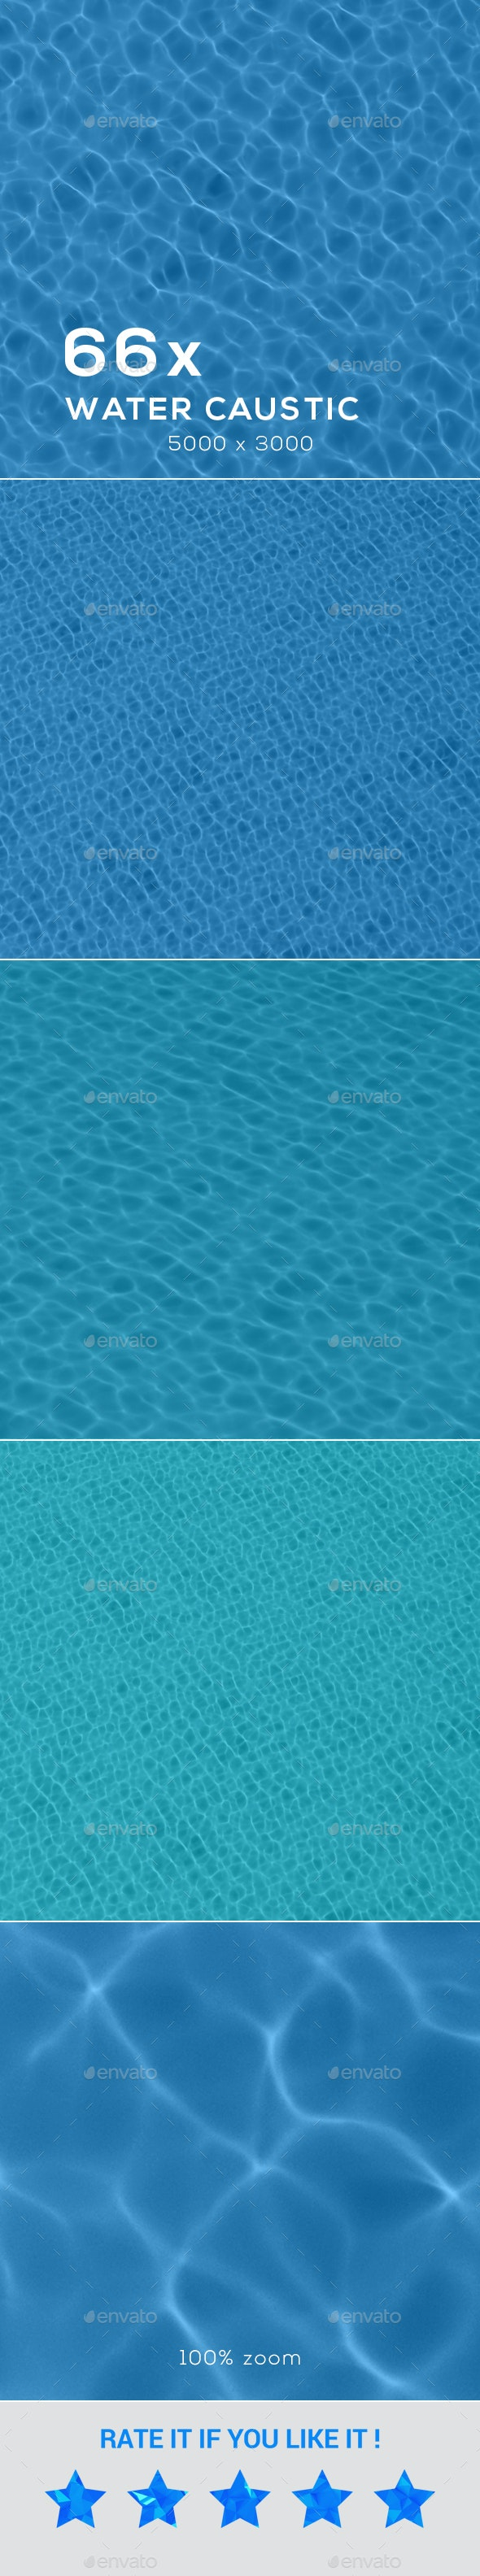 Water Caustic Backgrounds - Backgrounds Graphics